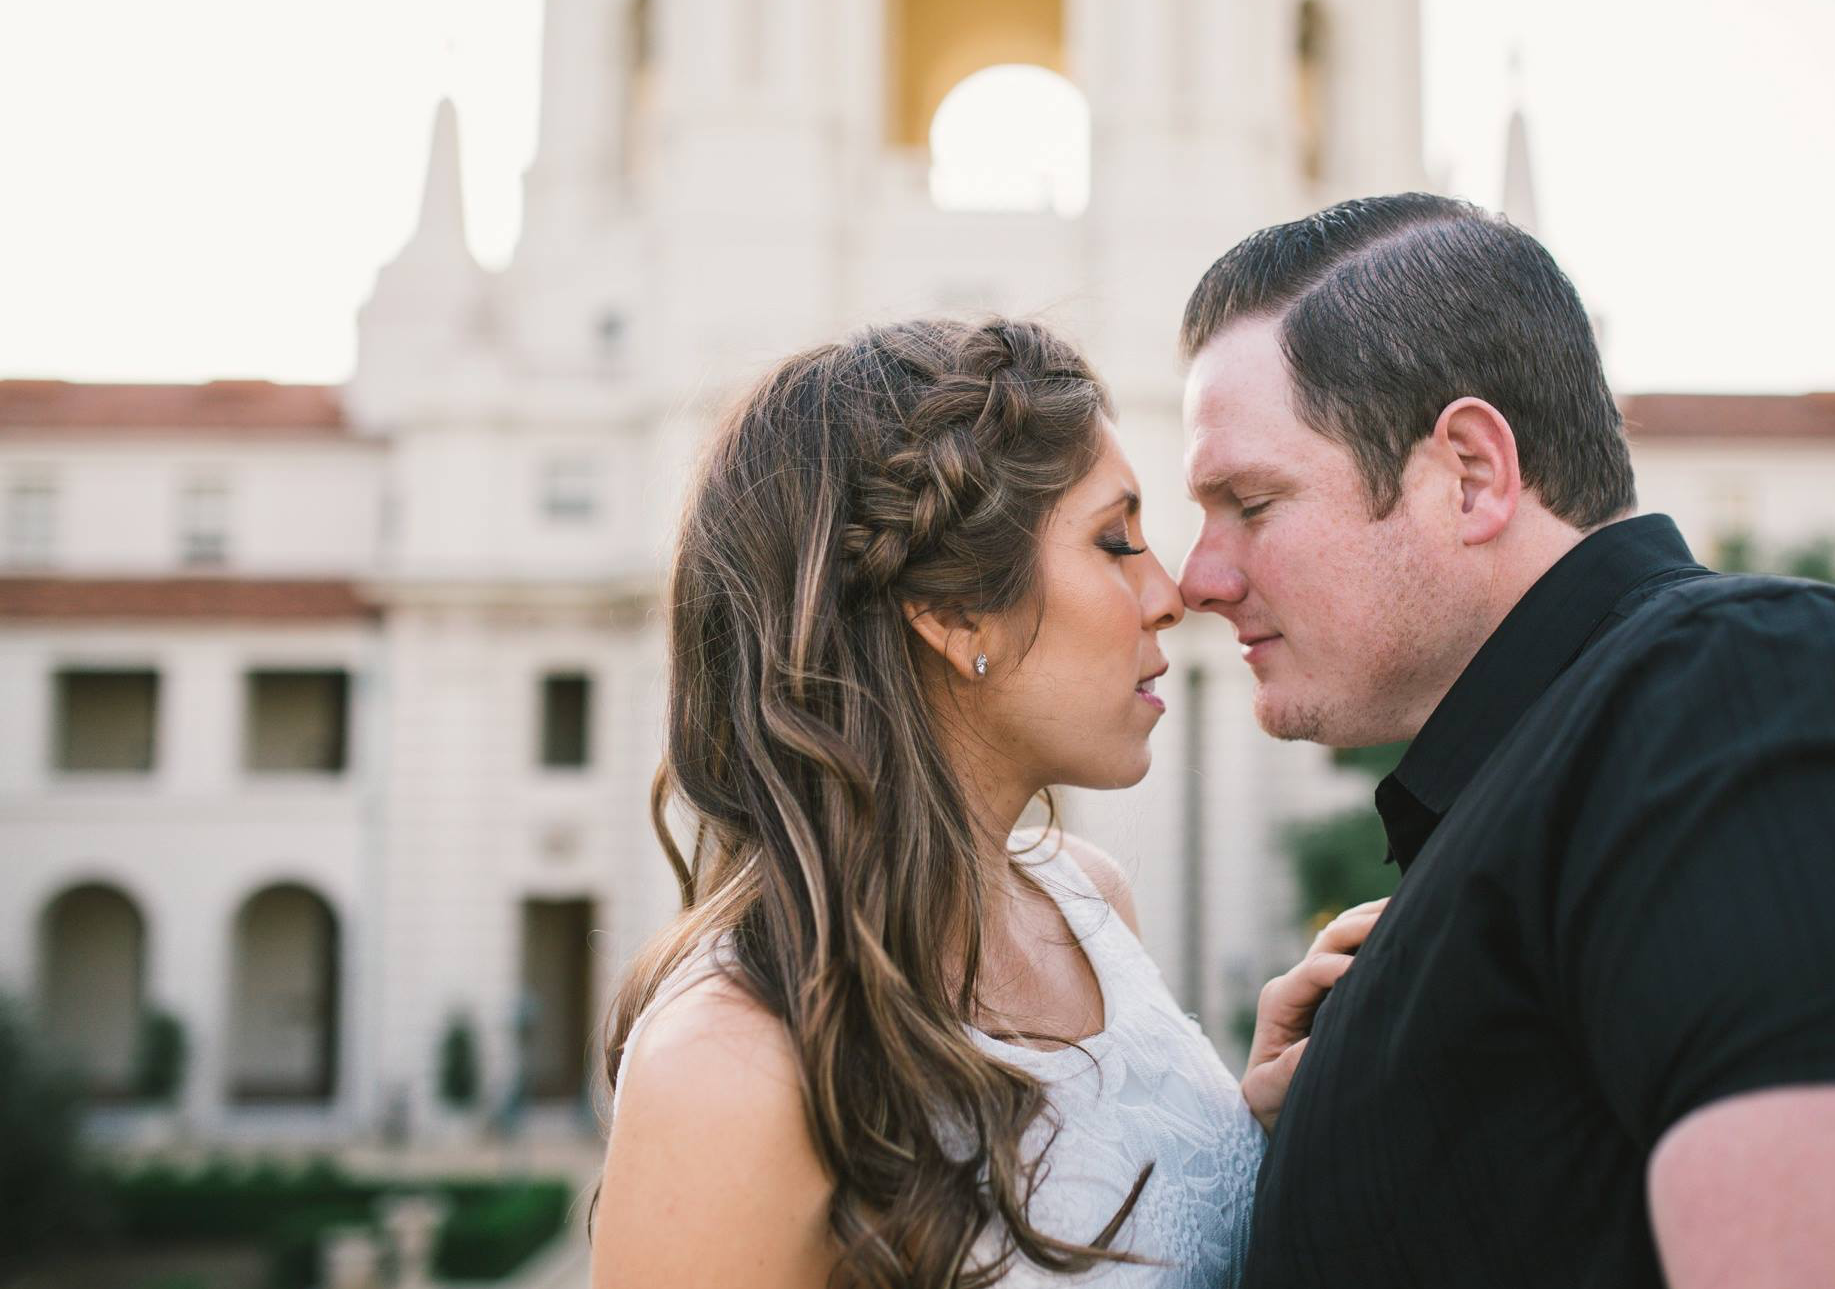 photography by paulina creative pasadena engagement photographer of romantic wedding photos